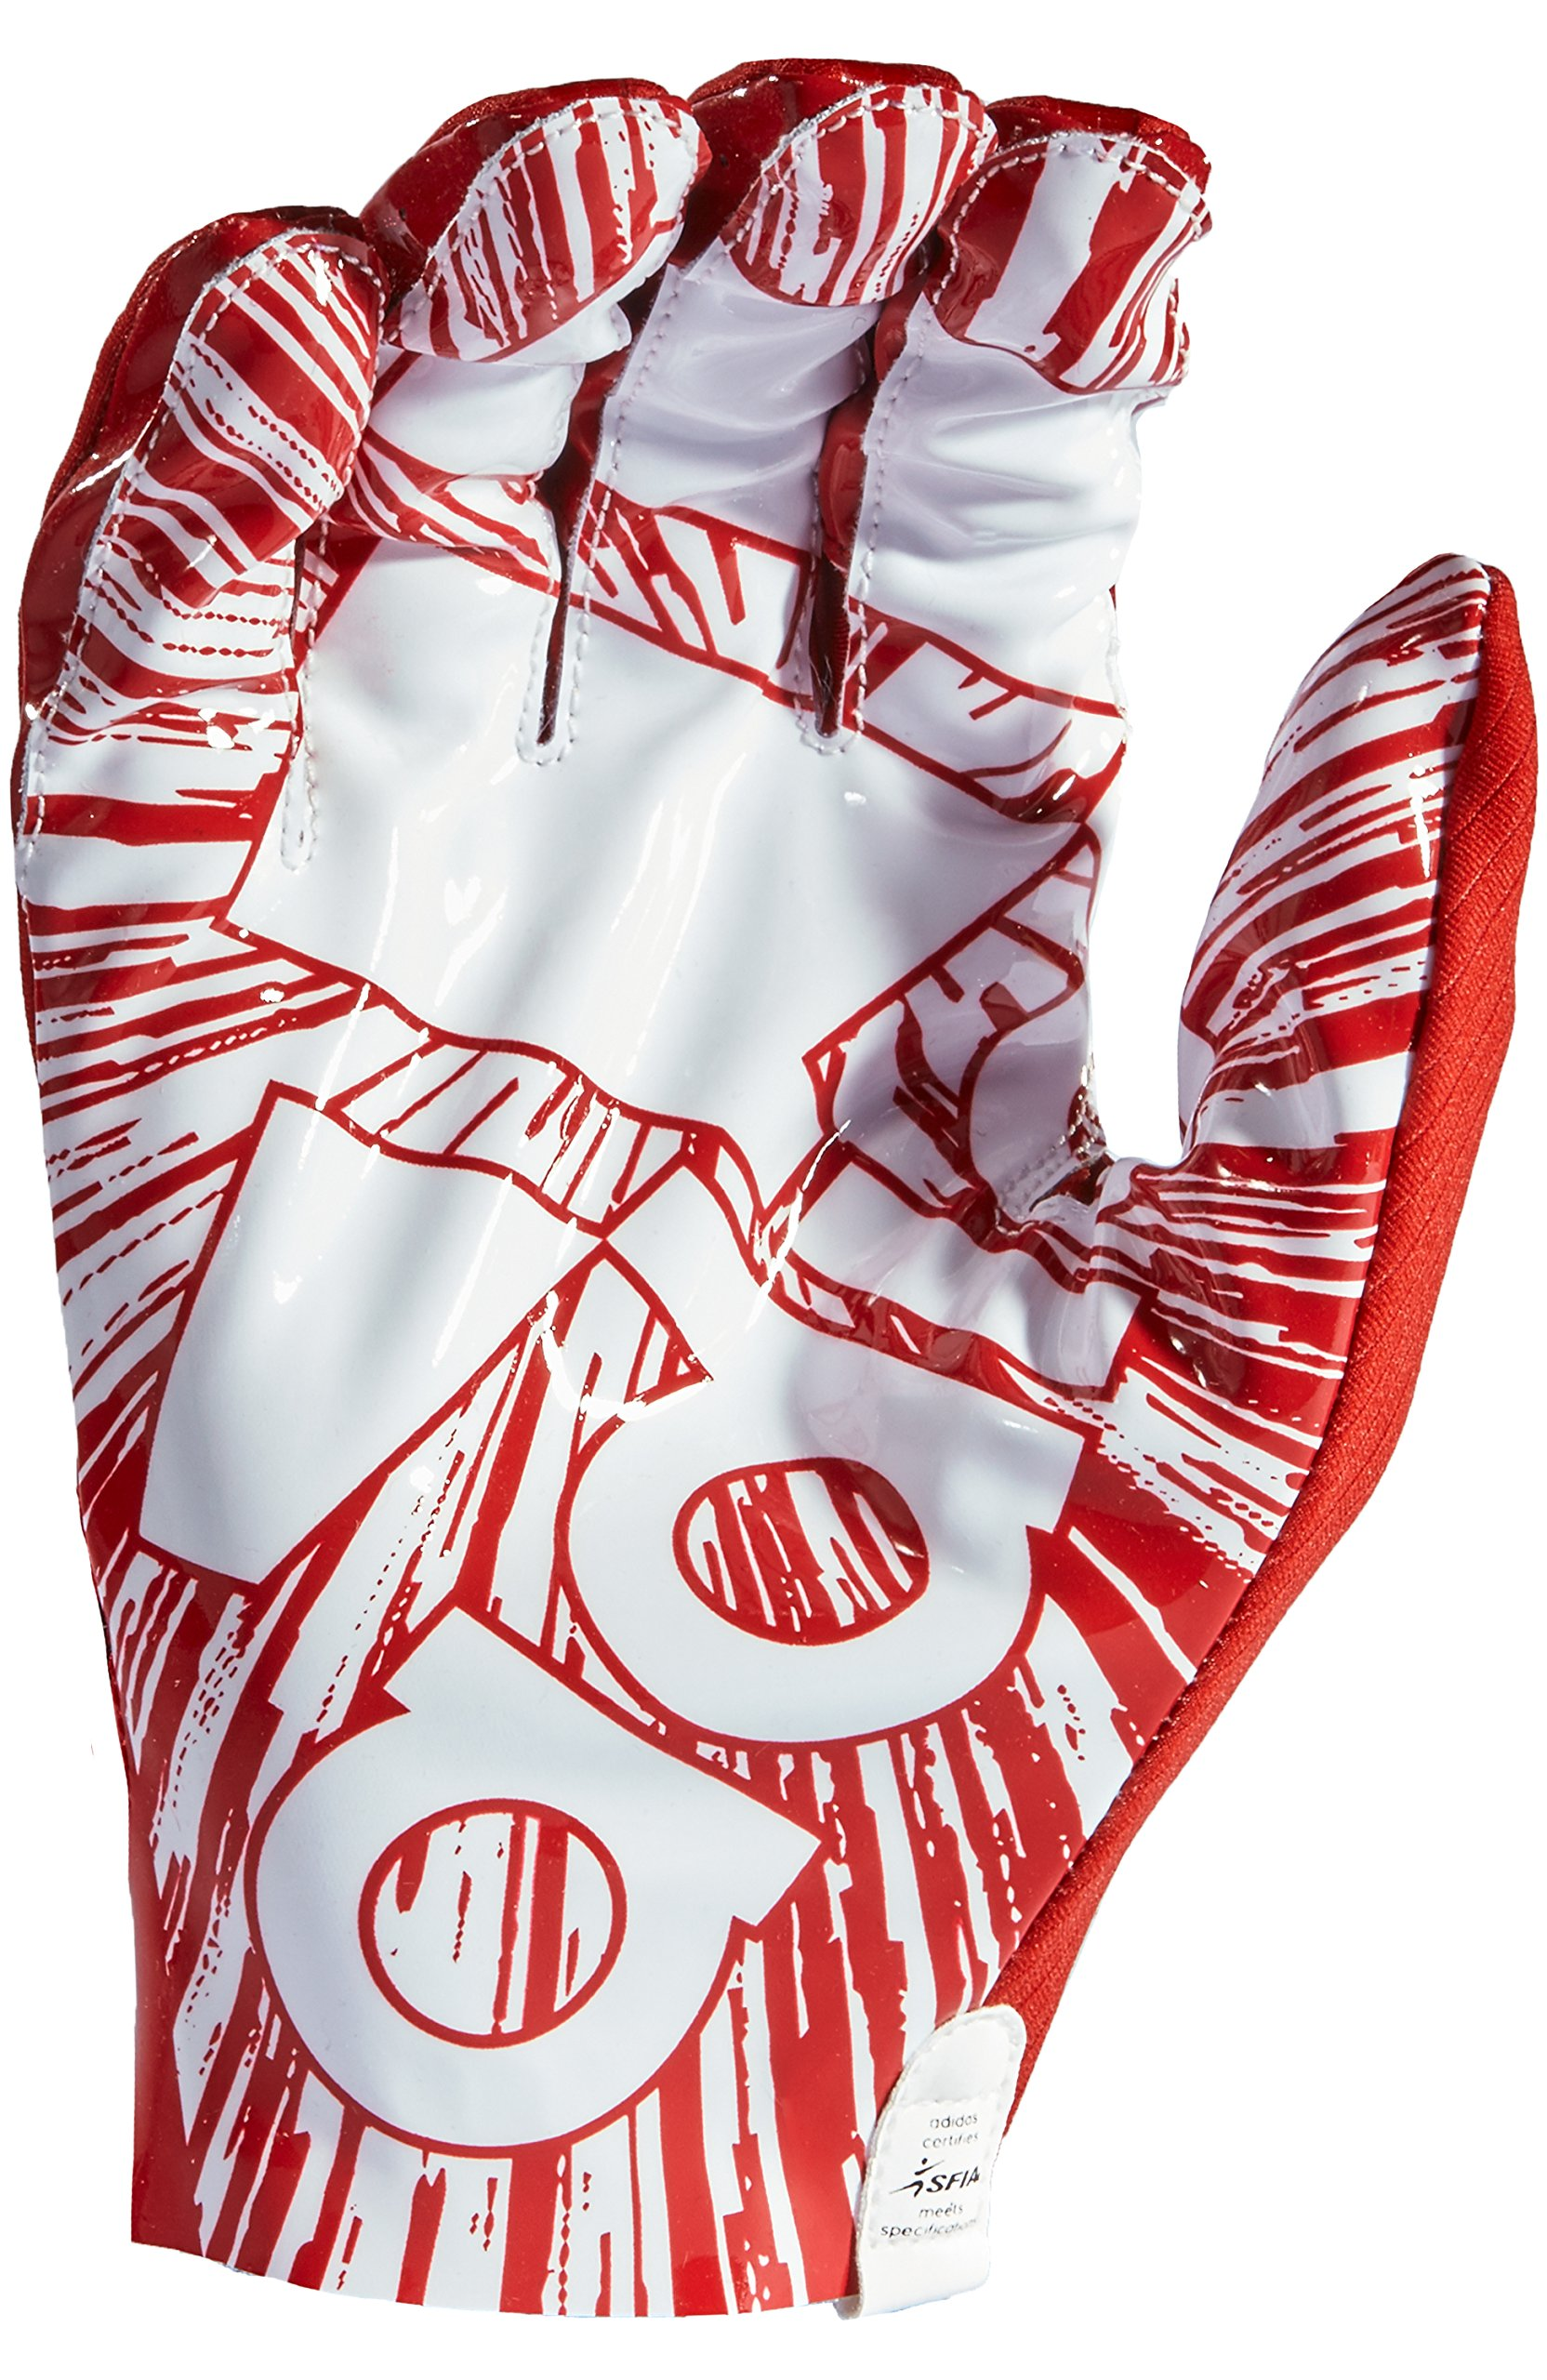 adidas AF1000 Adizero 7.0 Receiver's Gloves, Red, Medium by adidas (Image #2)